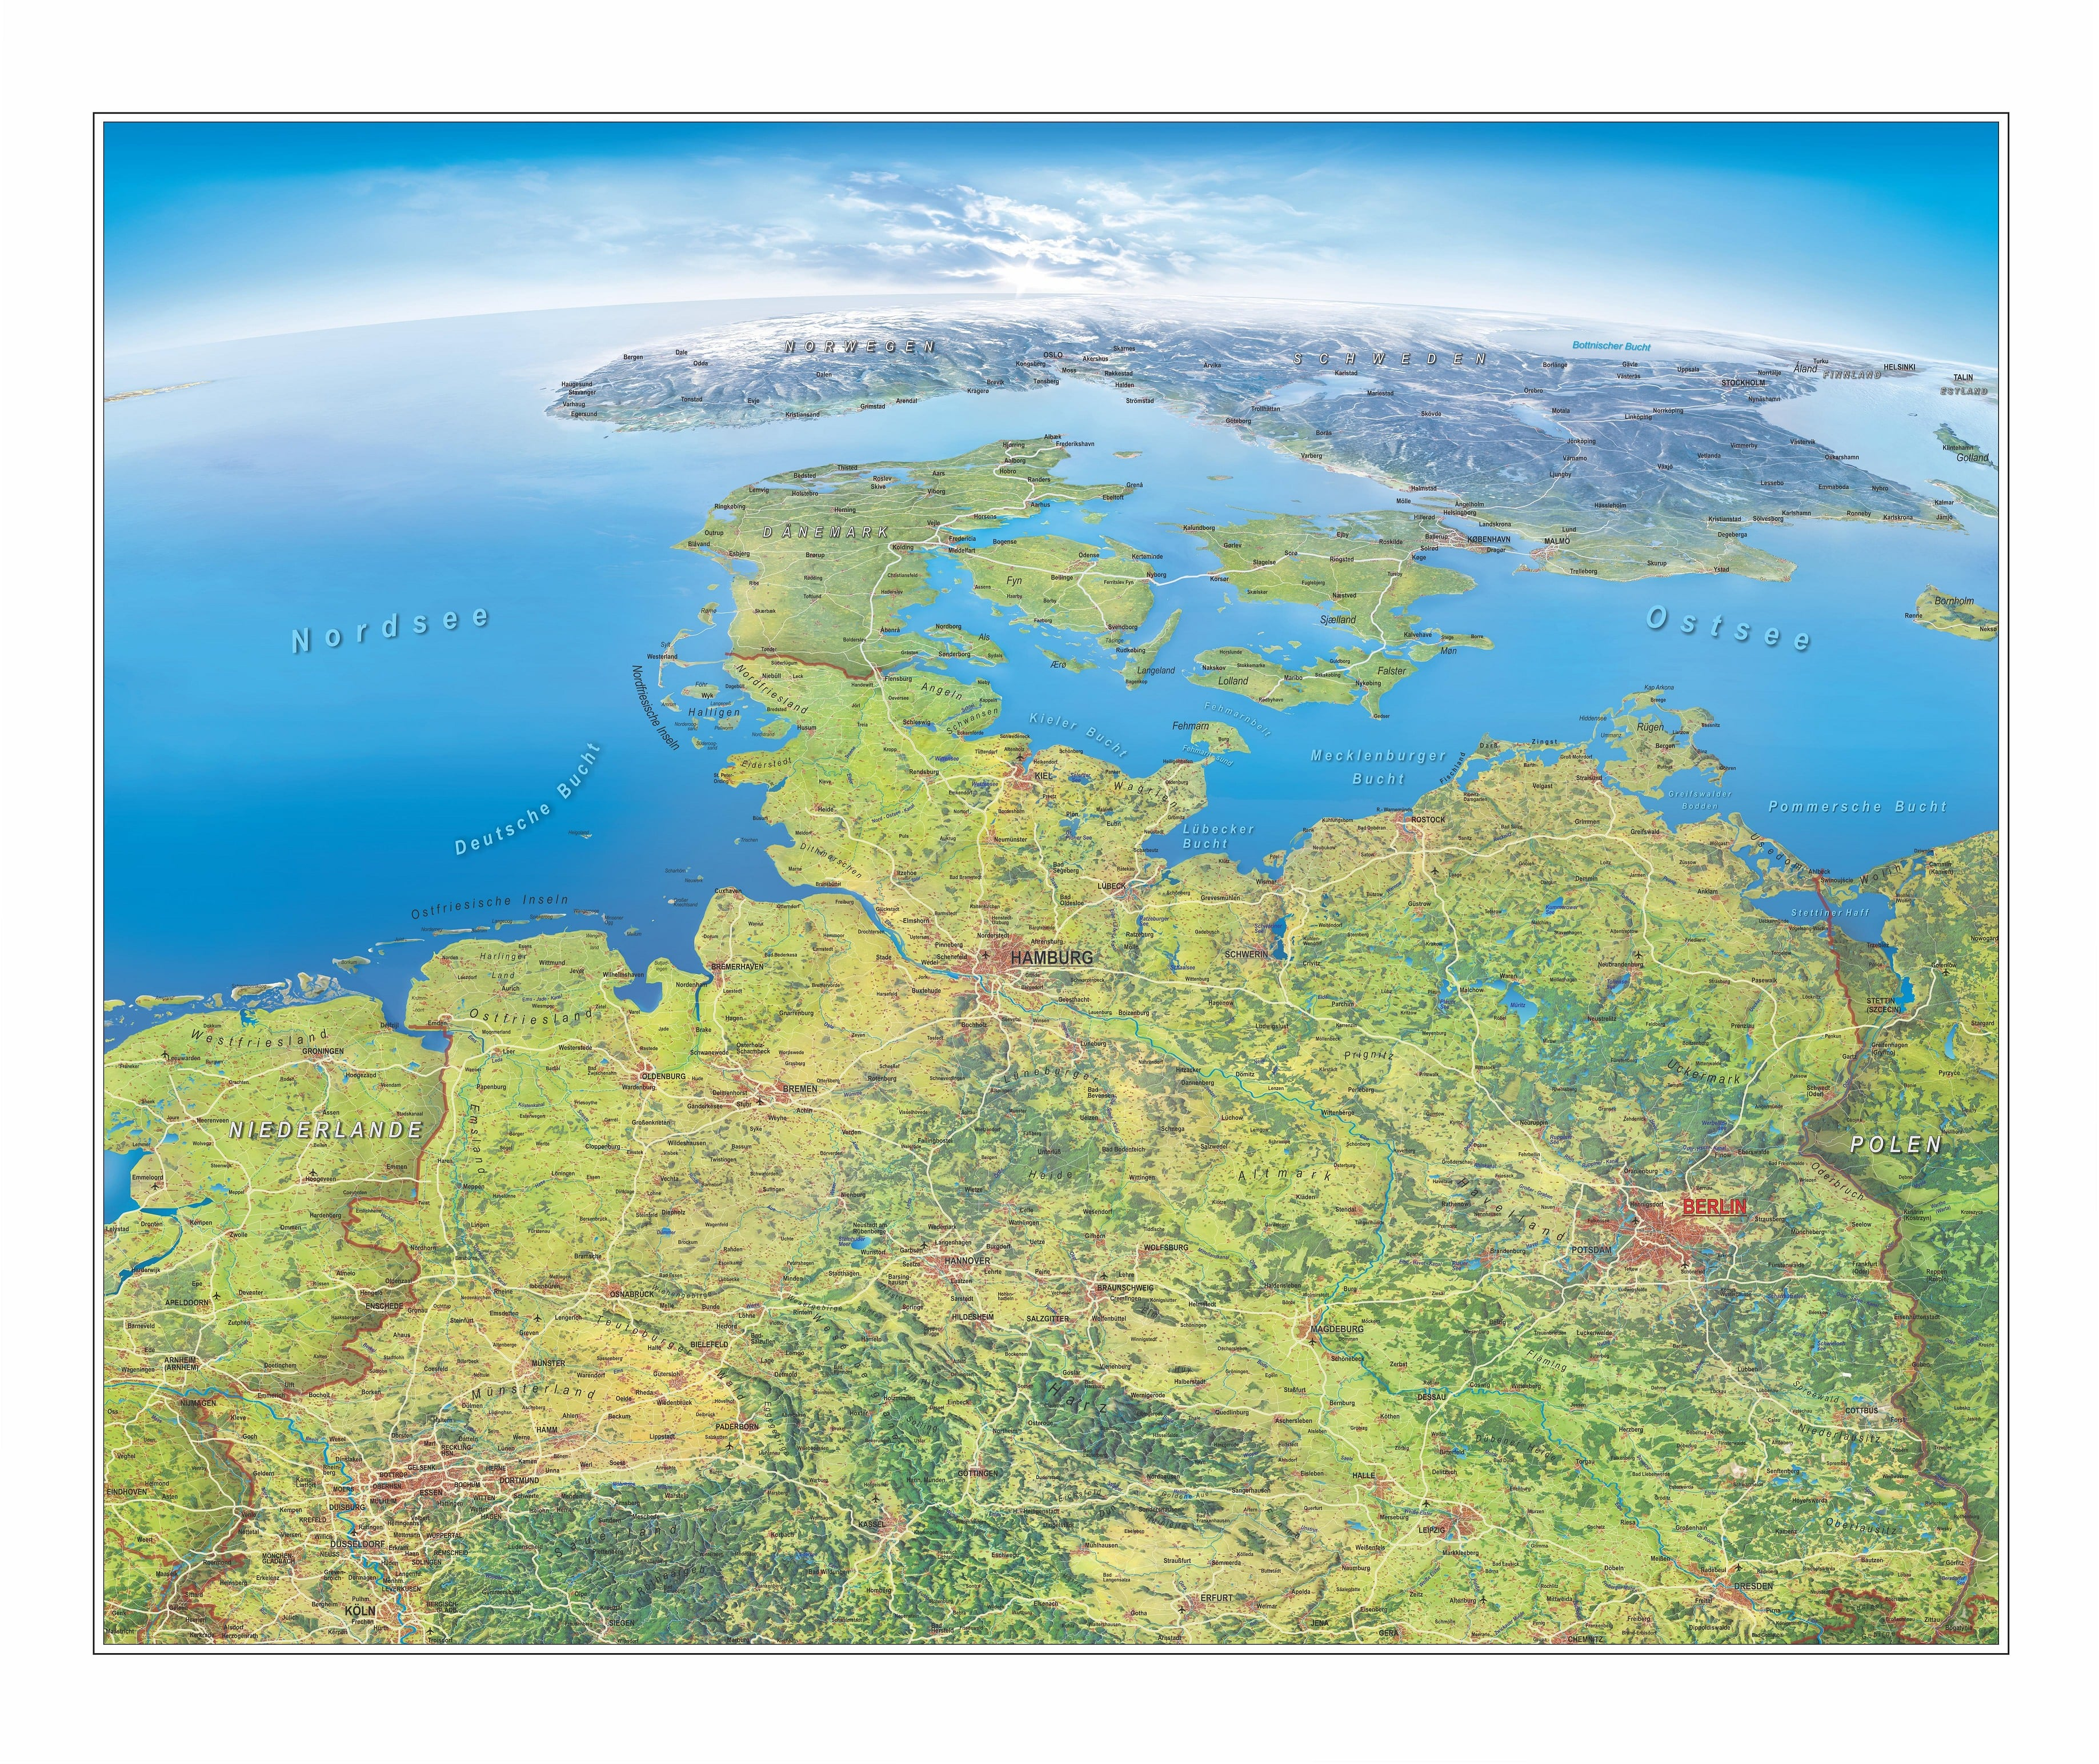 Map Of Germany Coast.Panorama Wall Map Northern Germany 116 X 94cm Germany Wall Maps